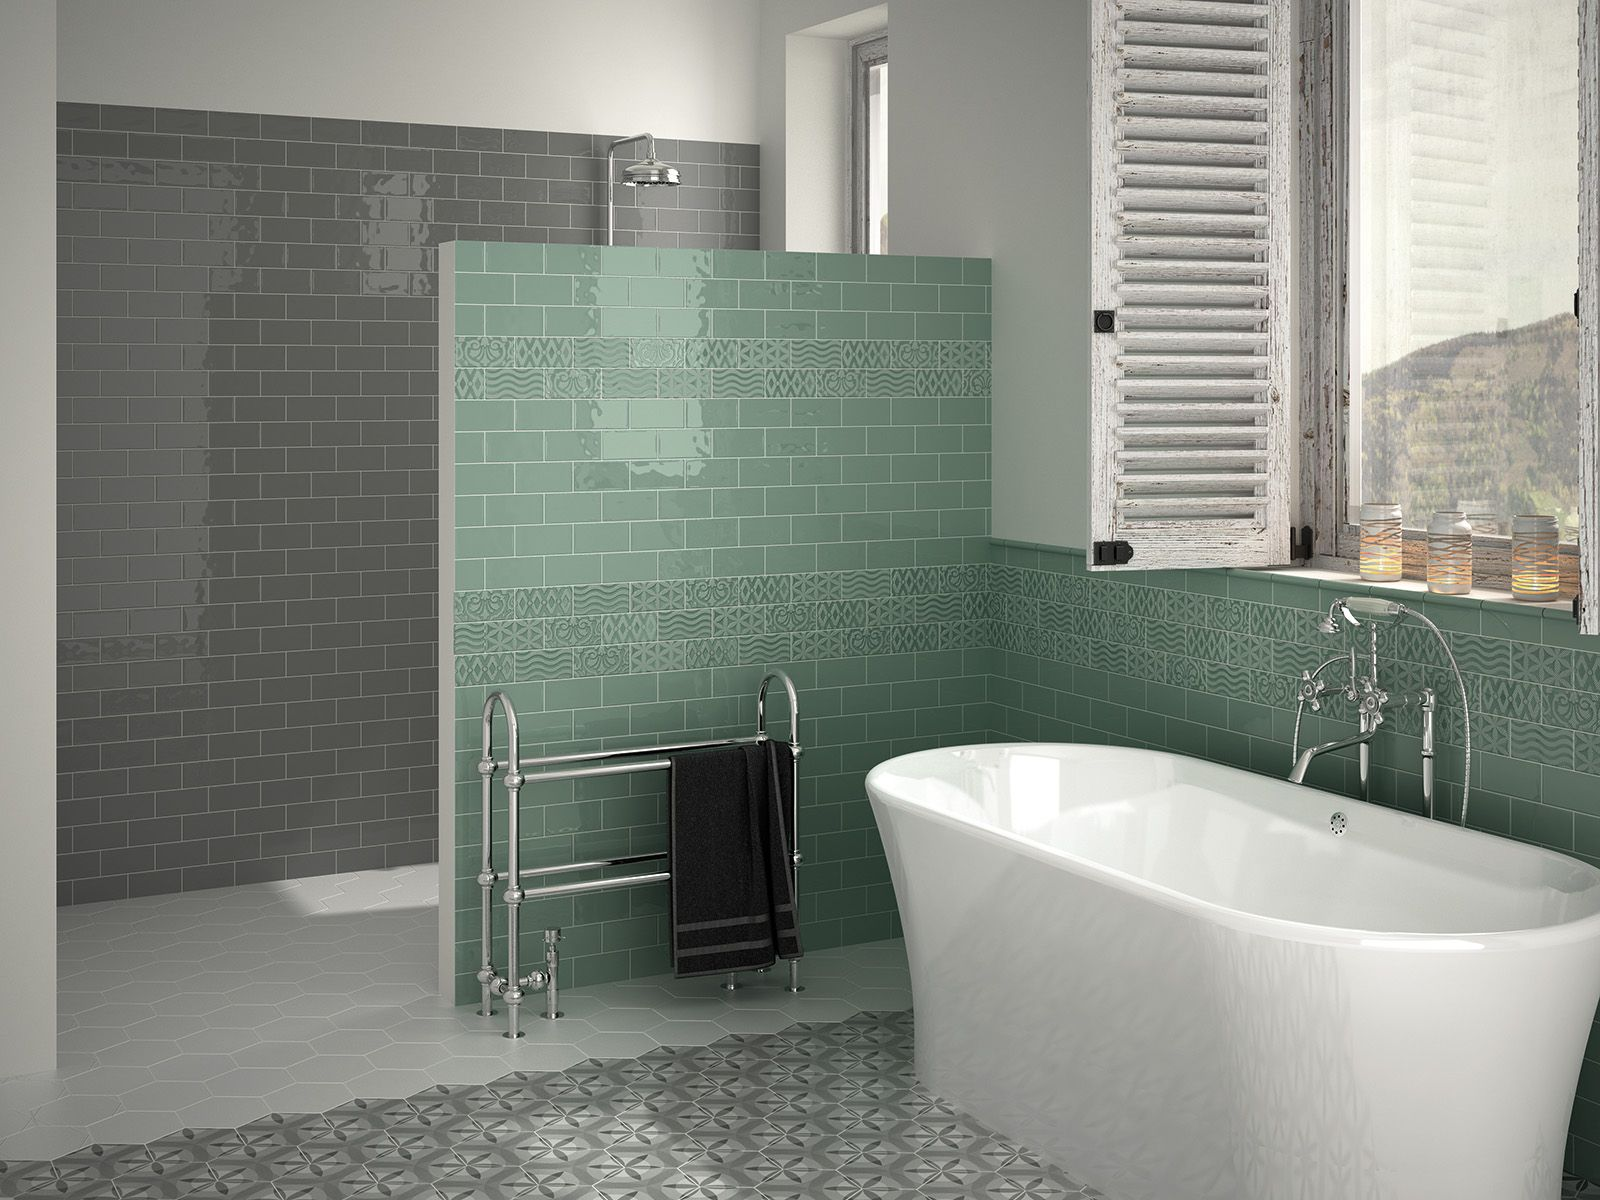 Rustic Country Style Wall Tiles For Bathrooms And Kitchens Lovely Mint Green Colour Brick Tiles Bathroom Tile Bathroom Bathroom Colors